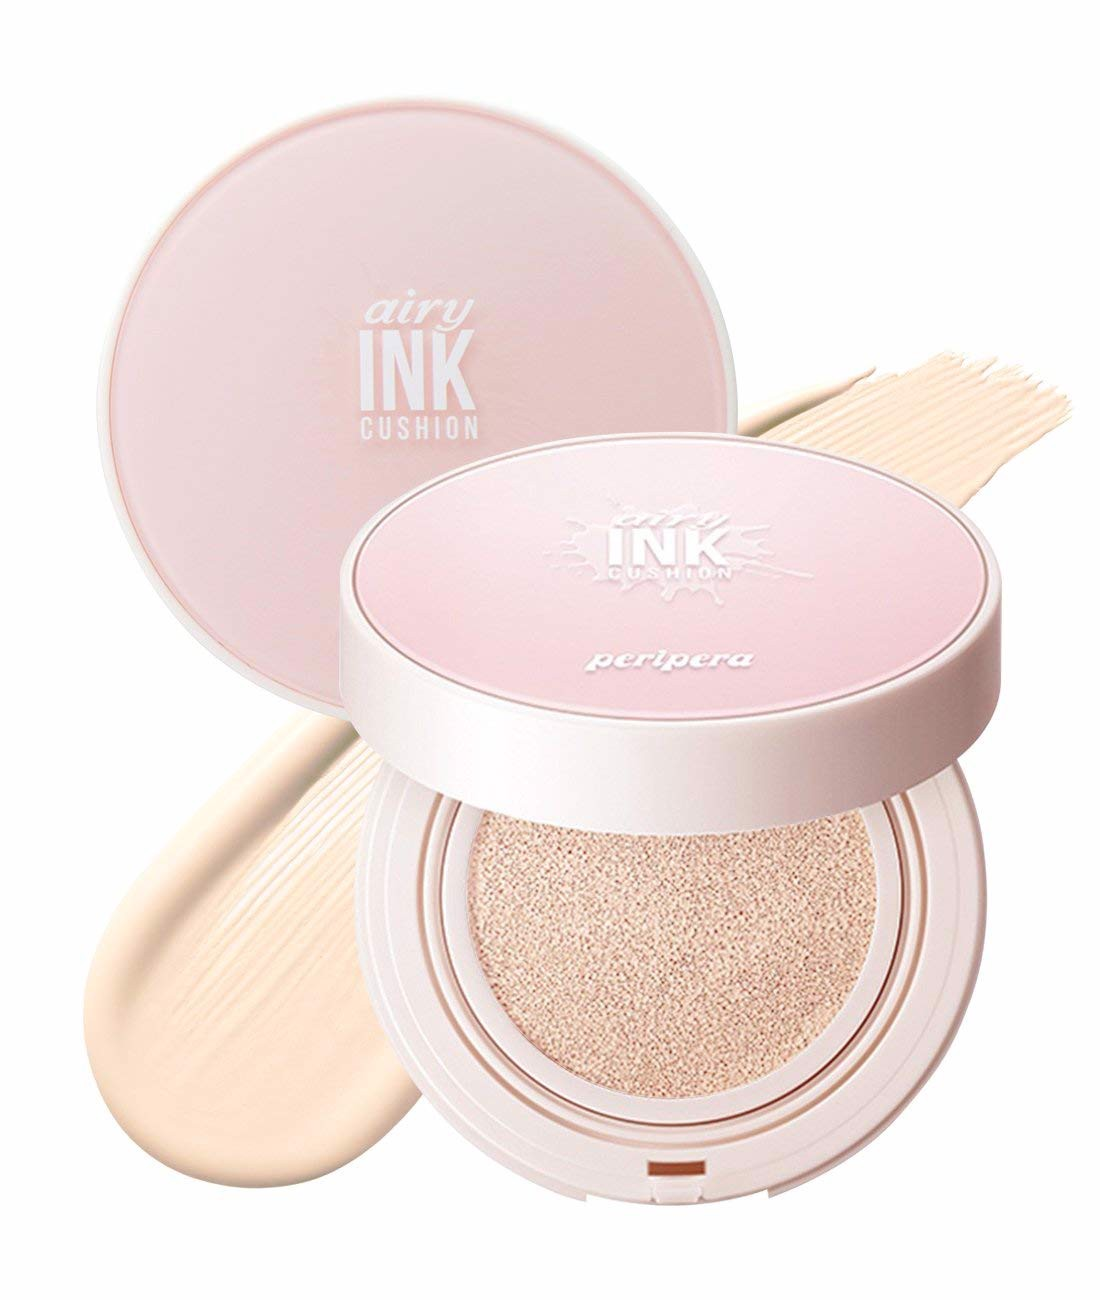 Phấn Nước Peripera Airy Ink Cushion 14g